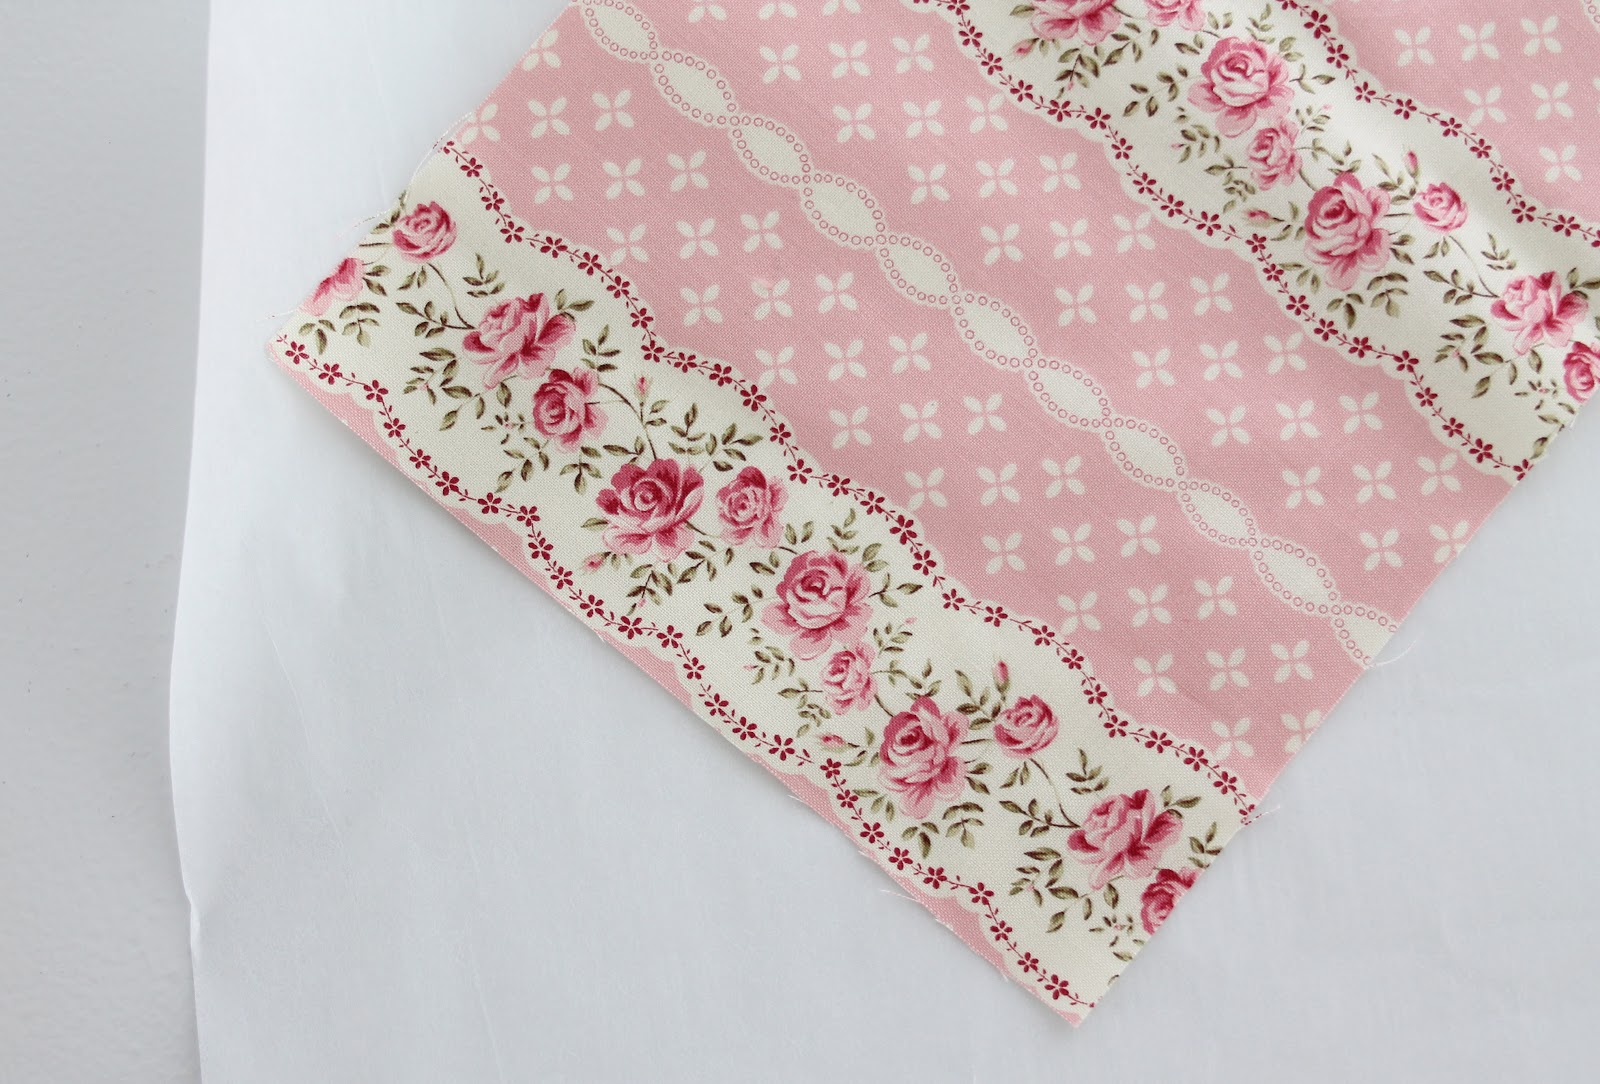 White apron hobby lobby - Cut Fabric And Wonder Under Close To Size Warm Your Iron To The Cotton Setting Without Steam